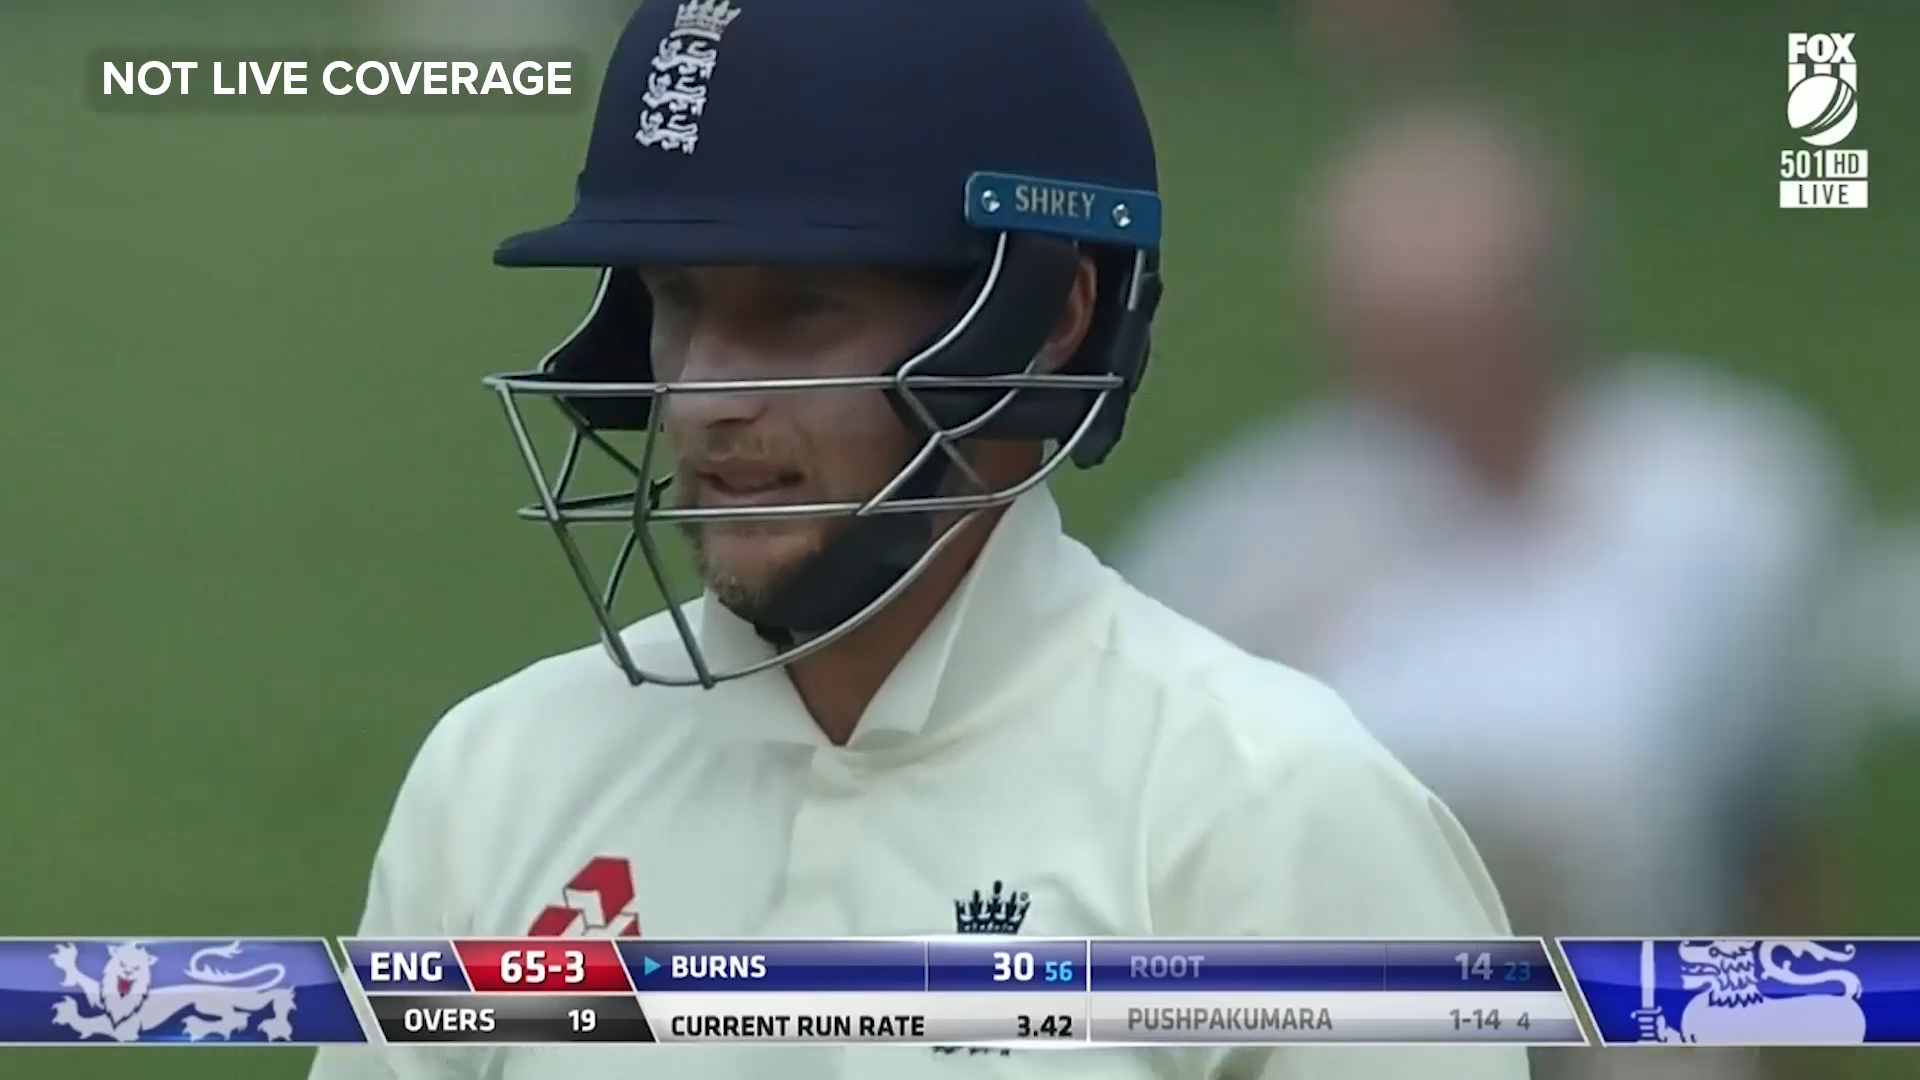 Root misses a straight one